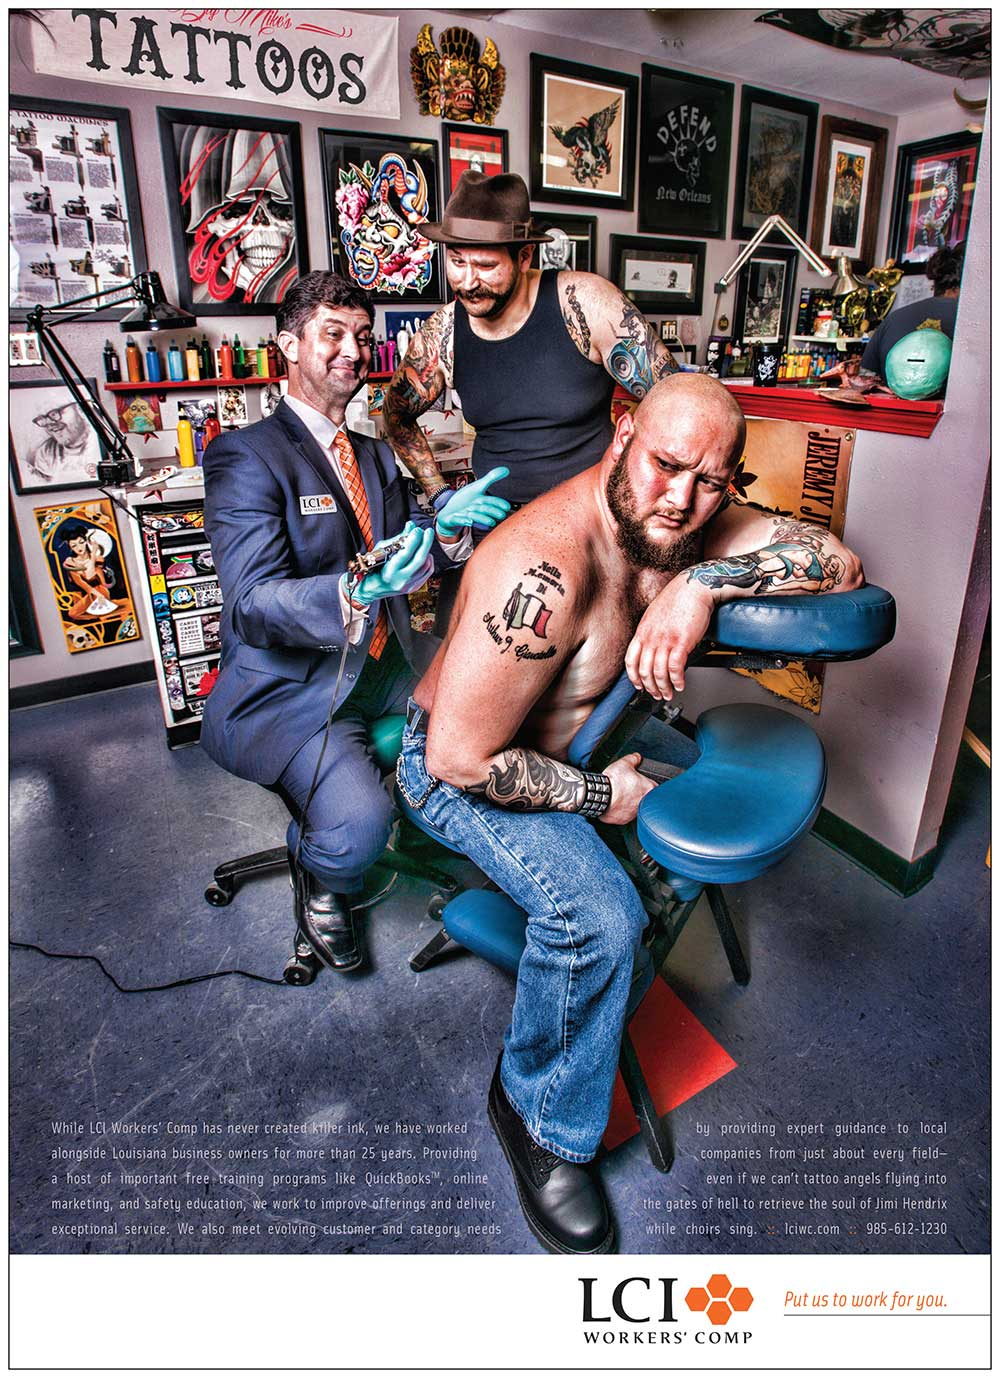 LCI Workers' Comp Print Advertising Ad - Shot at Eye Candy Tattoo